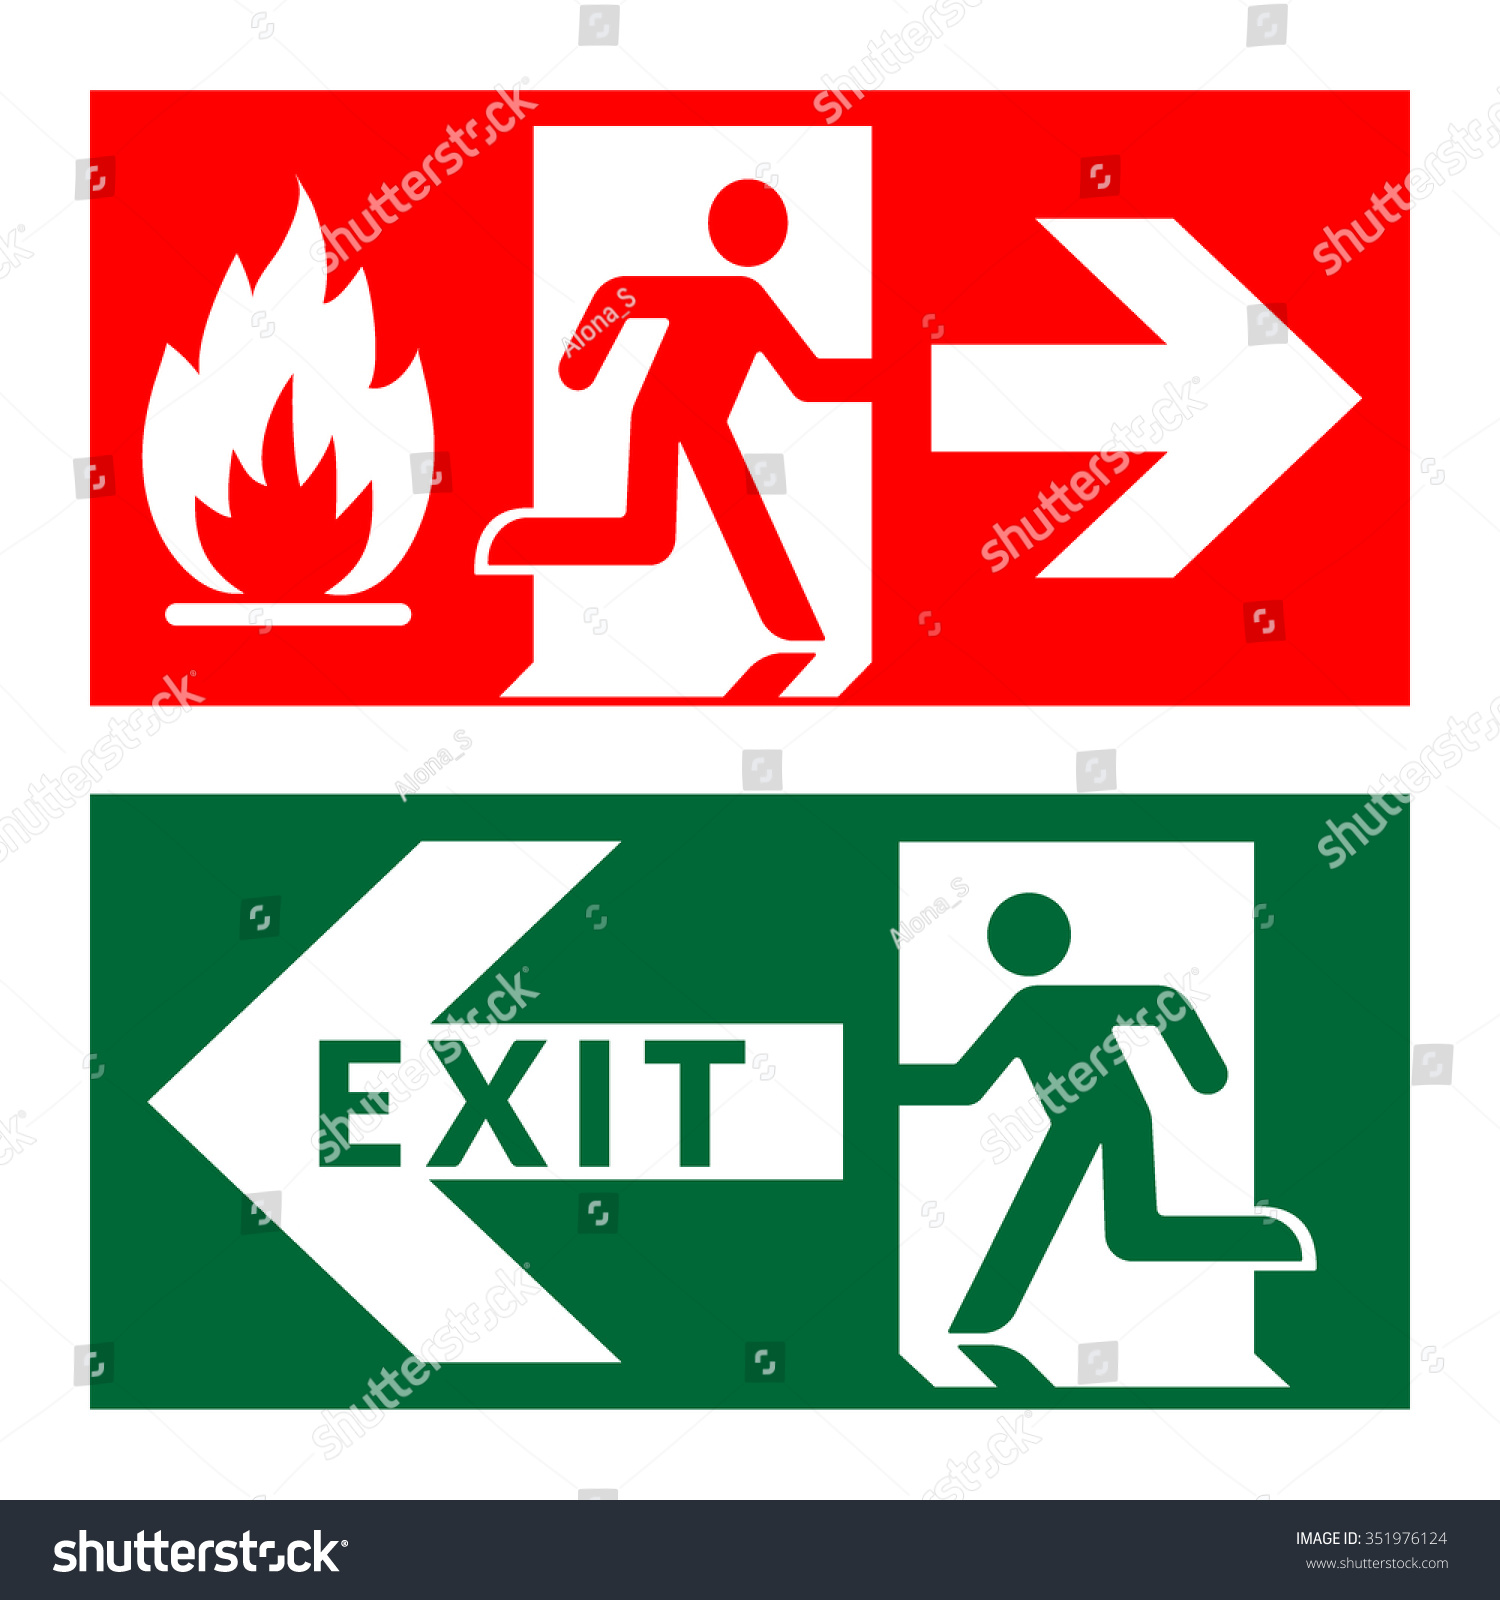 Feuerloescher Richtig Anwenden further Fire Extinguisher Sizes Chart also Stock Vector Exit Sign Emergency Fire Exit Door And Exit Door Green And Red Icon On White Background Safe furthermore 62346776065818672 further RegulatorySigns. on fire safety symbols and meanings